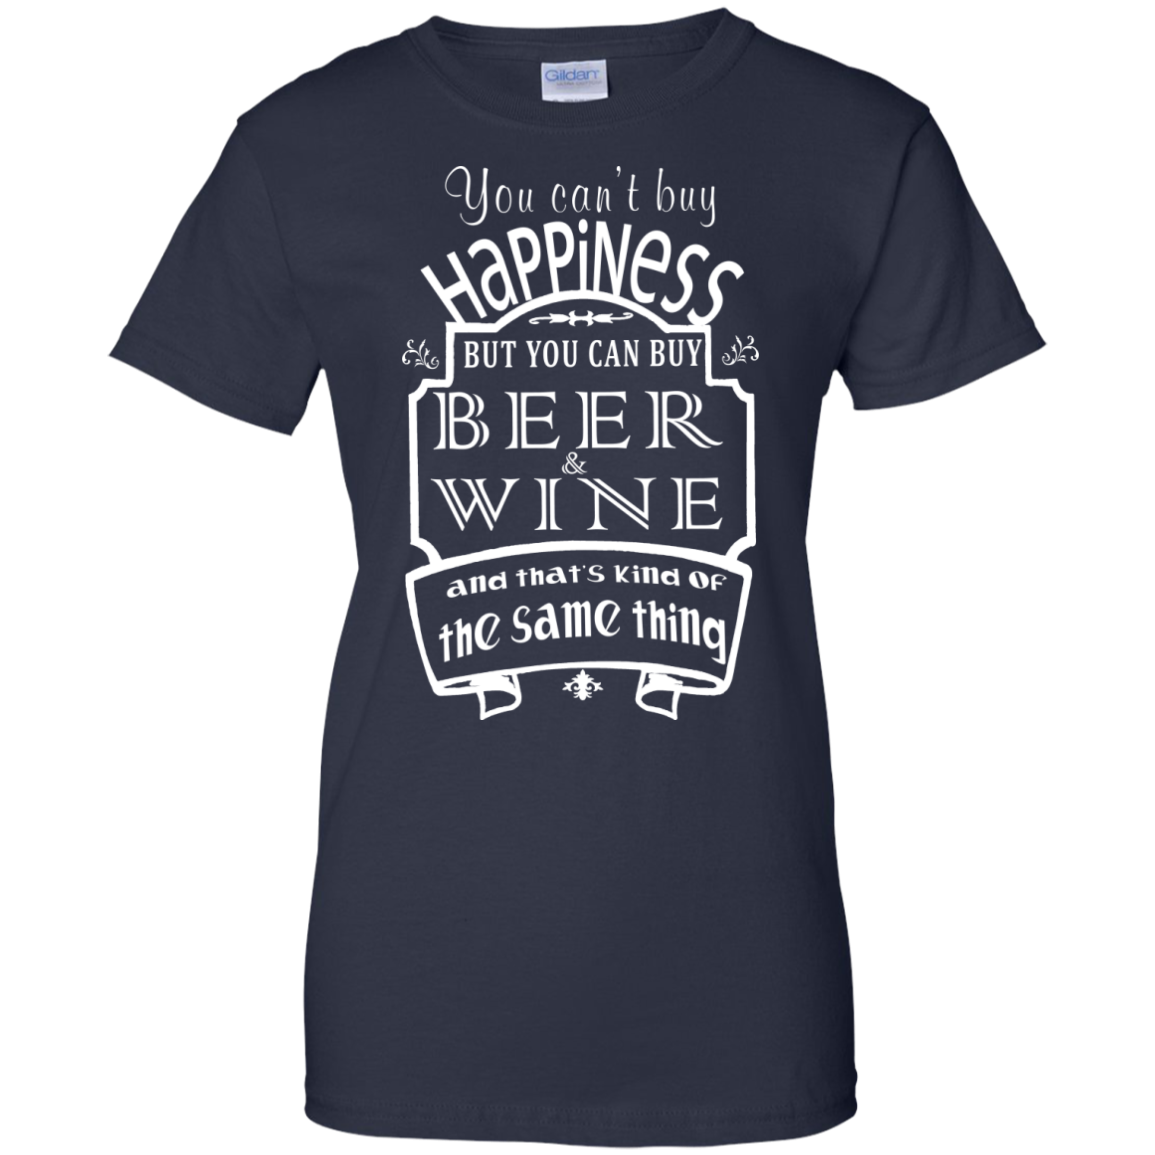 ...BEER & WINE... - TheSunCat.com - 5